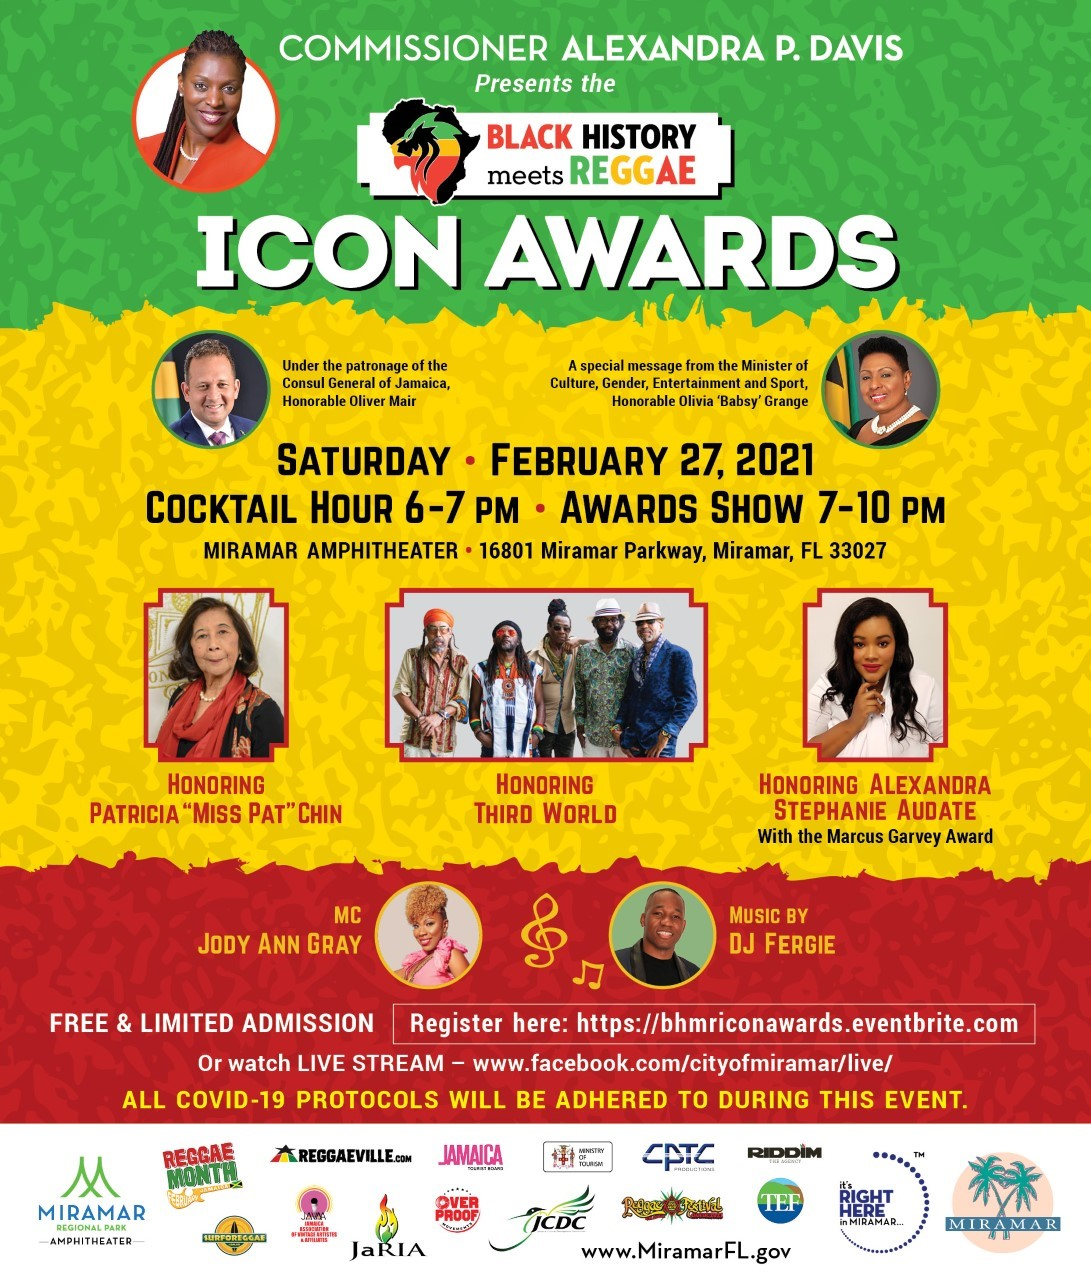 Commissioner Davis Black History Meets Reggae Icon Awards Flyer